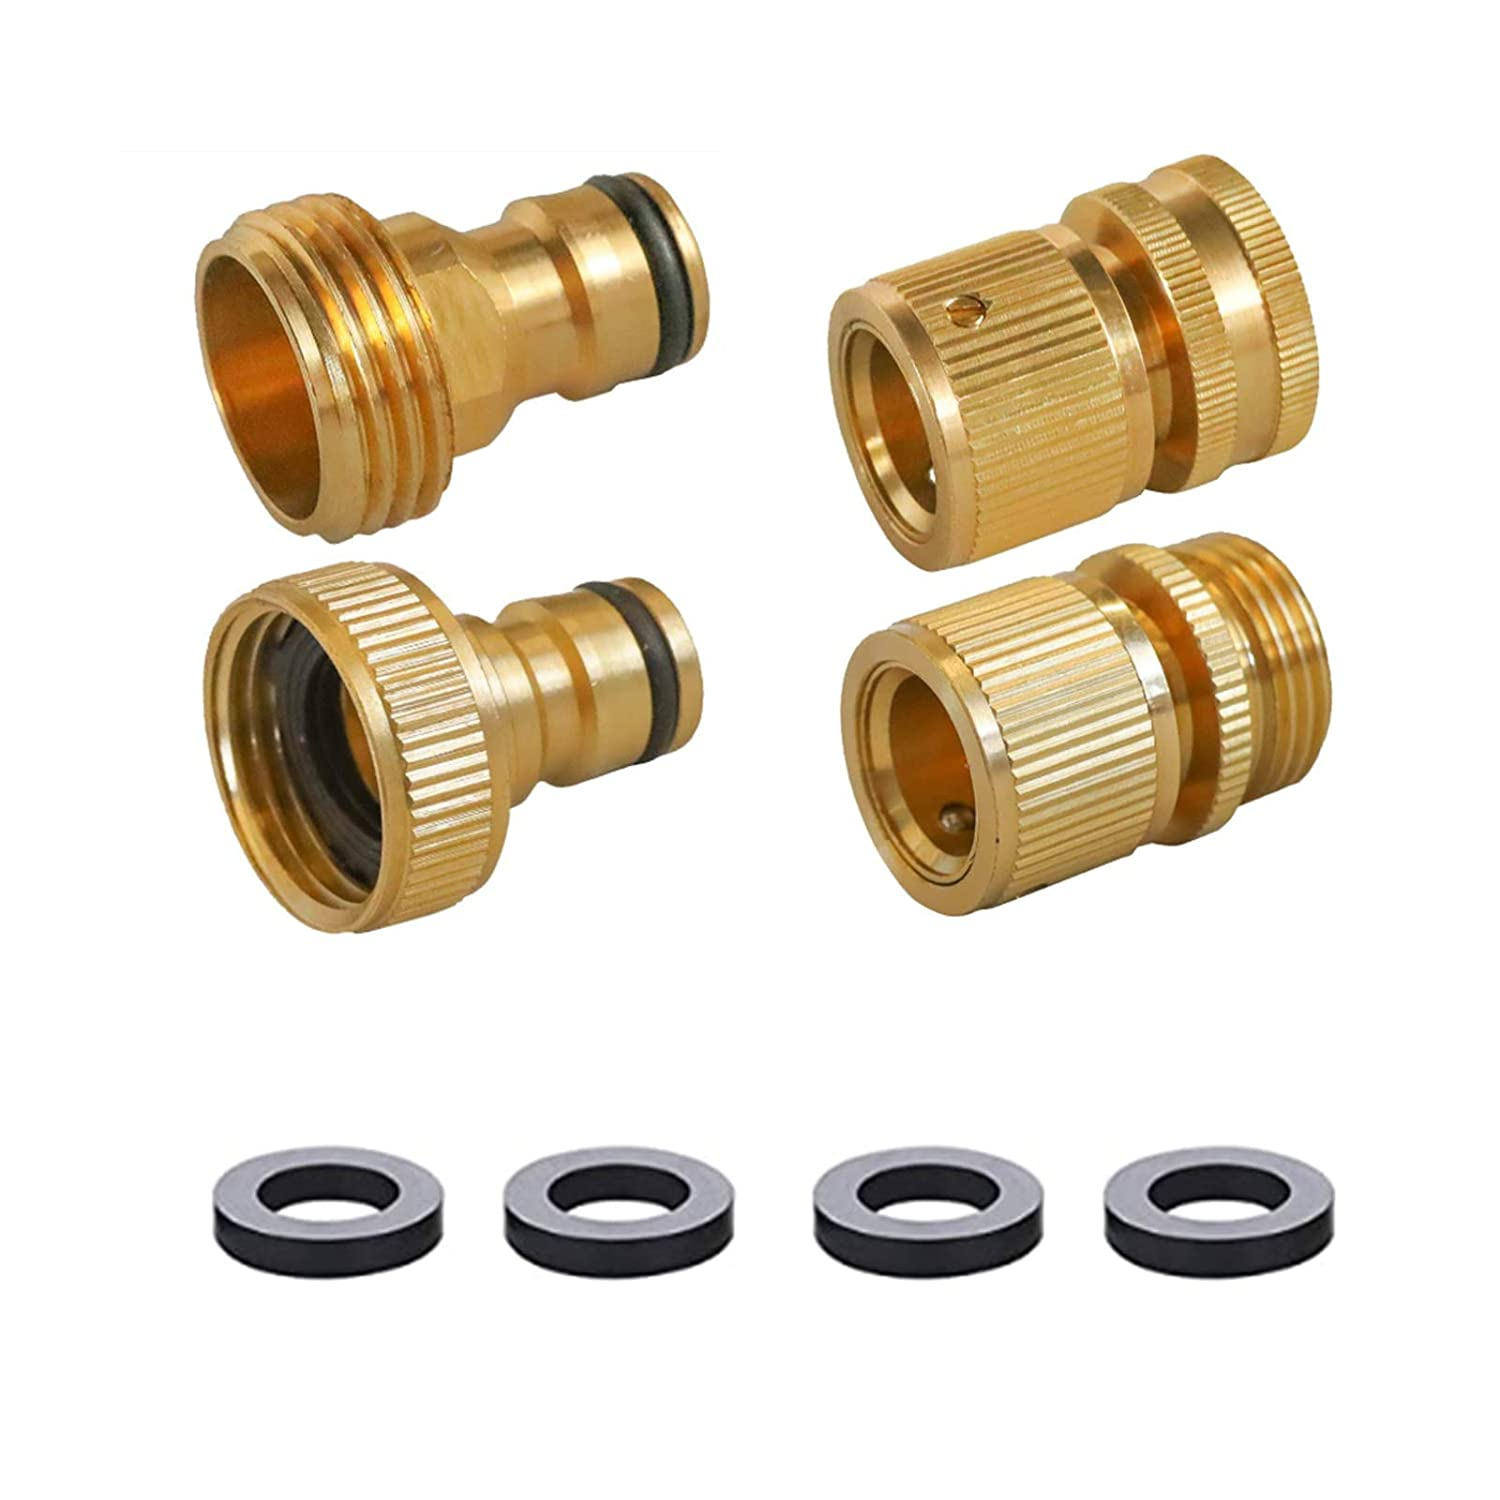 Garden Hose Quick Connect, Solid Brass 3/4 Inch Female and Male Connectors to Brass Male and Female Nipples Garden Hose Fitting Water Hose Connectors